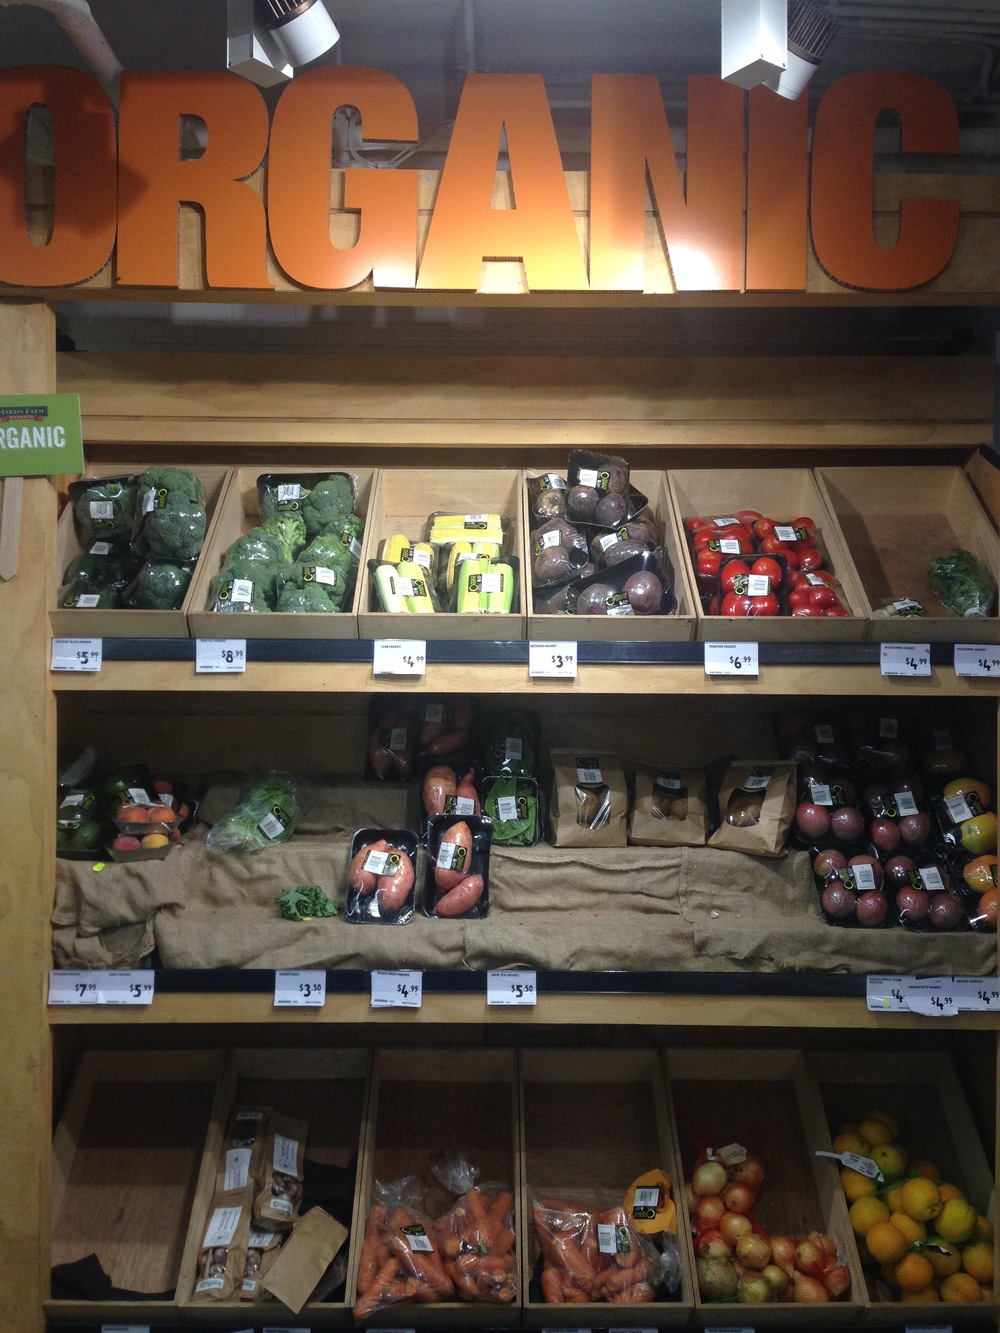 The organic produce section of Harris Farm in Bondi Beach, although this is a common display in all the Harris farm stores I have been in.